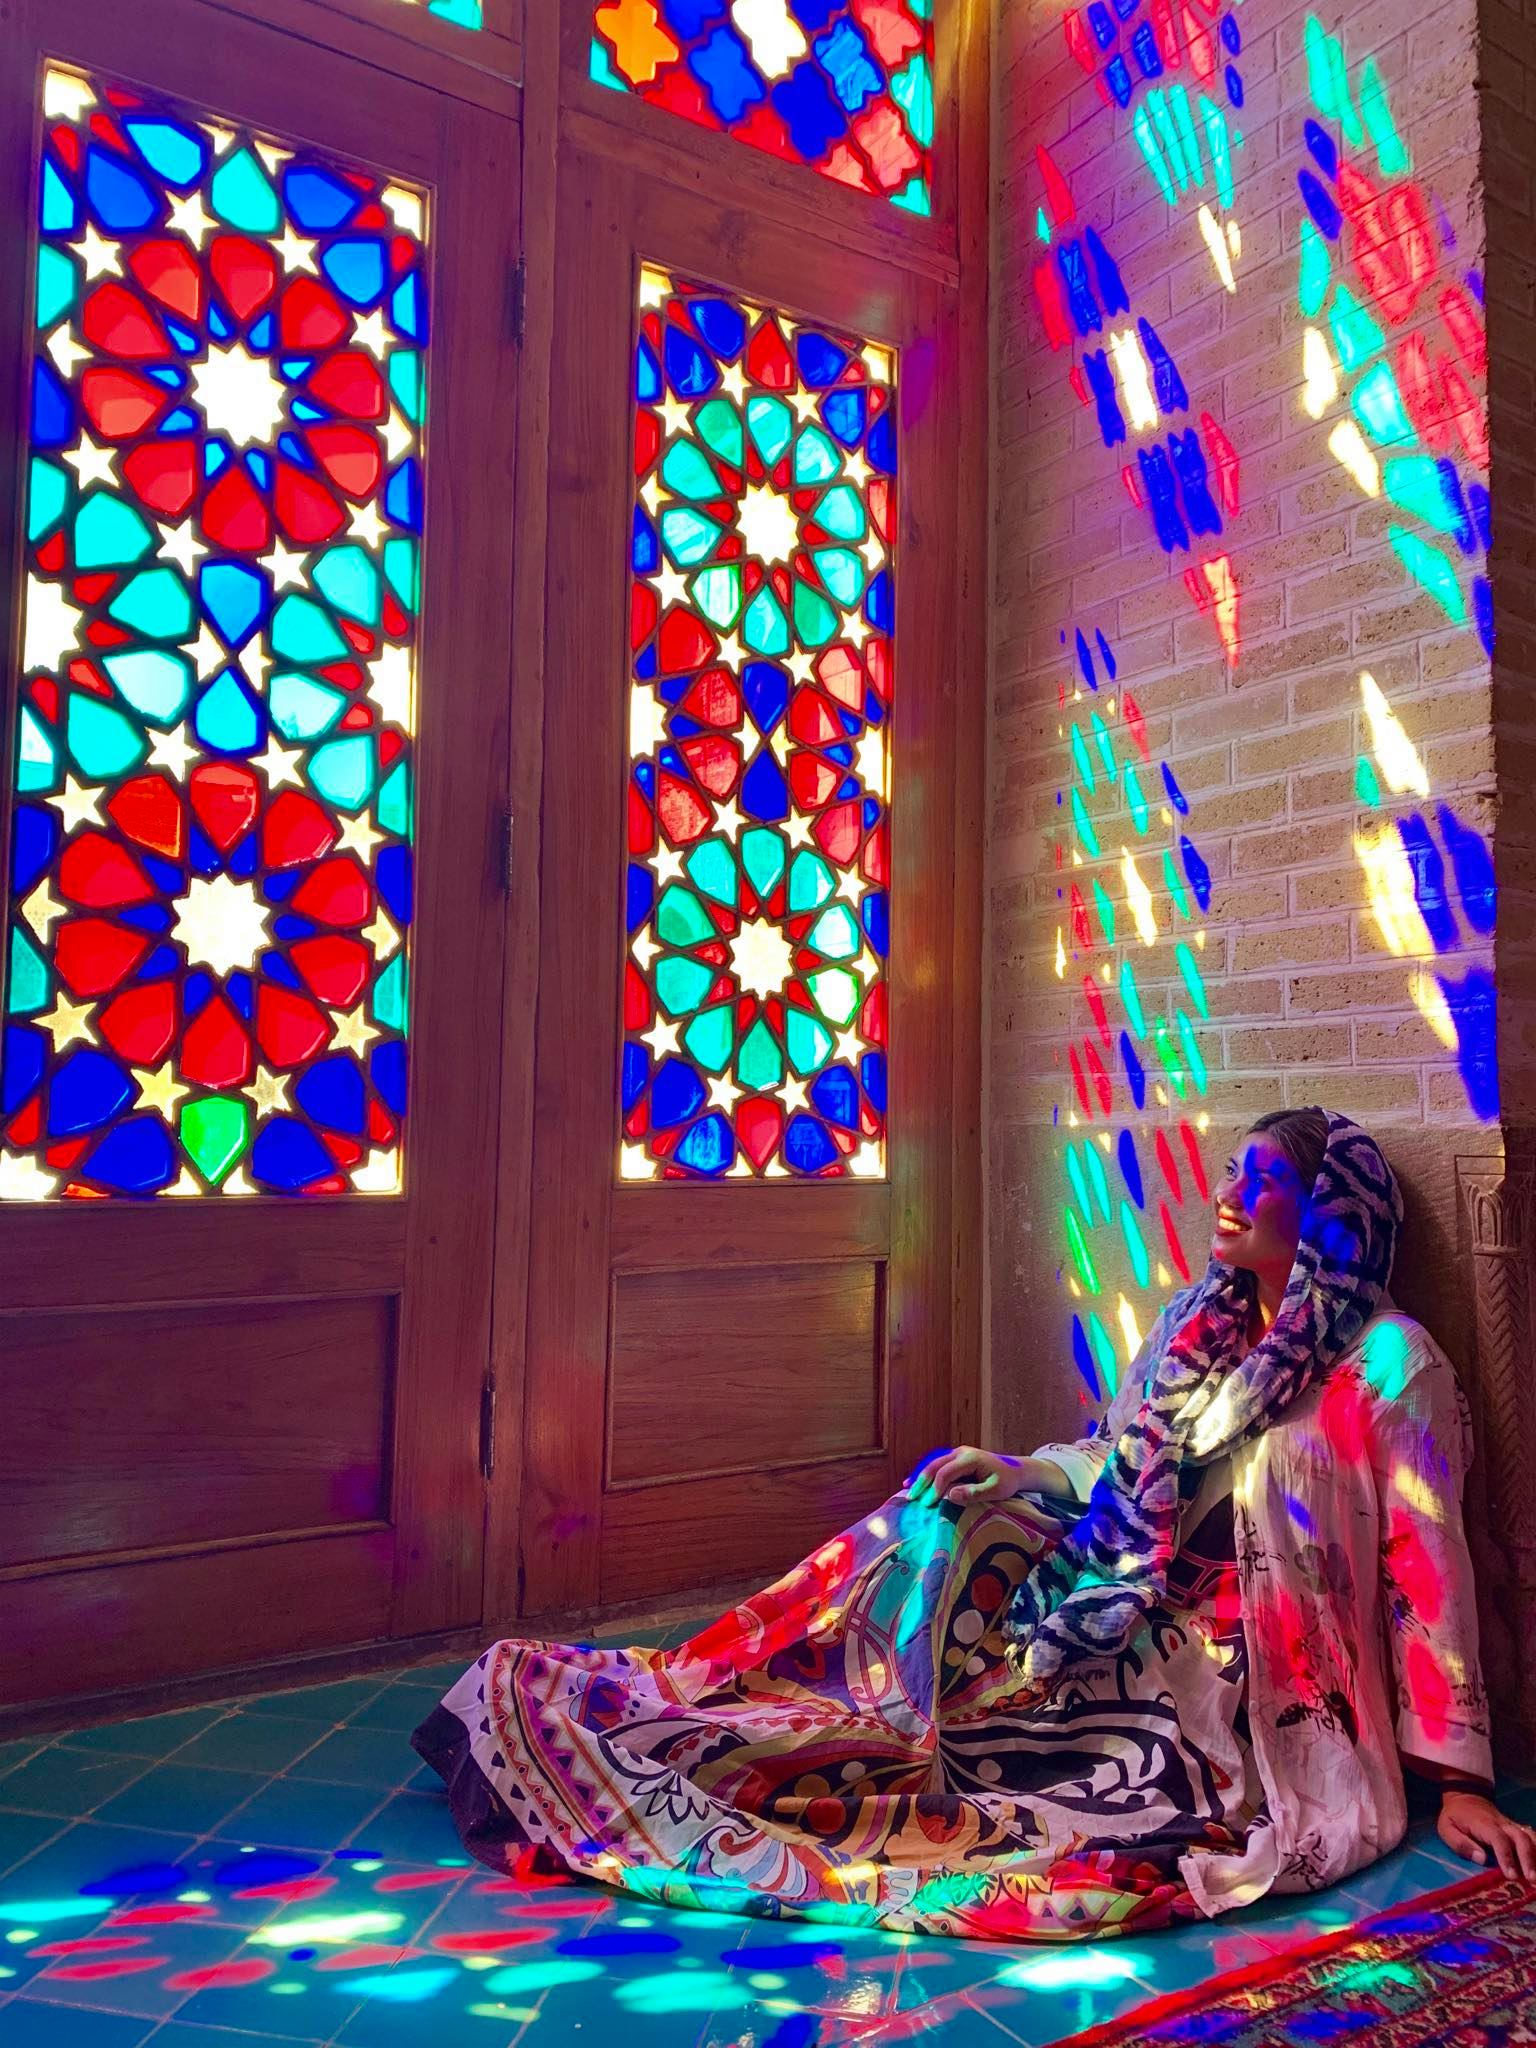 Kach Solo Travels in 2019 Full day tour of Shiraz50.jpg